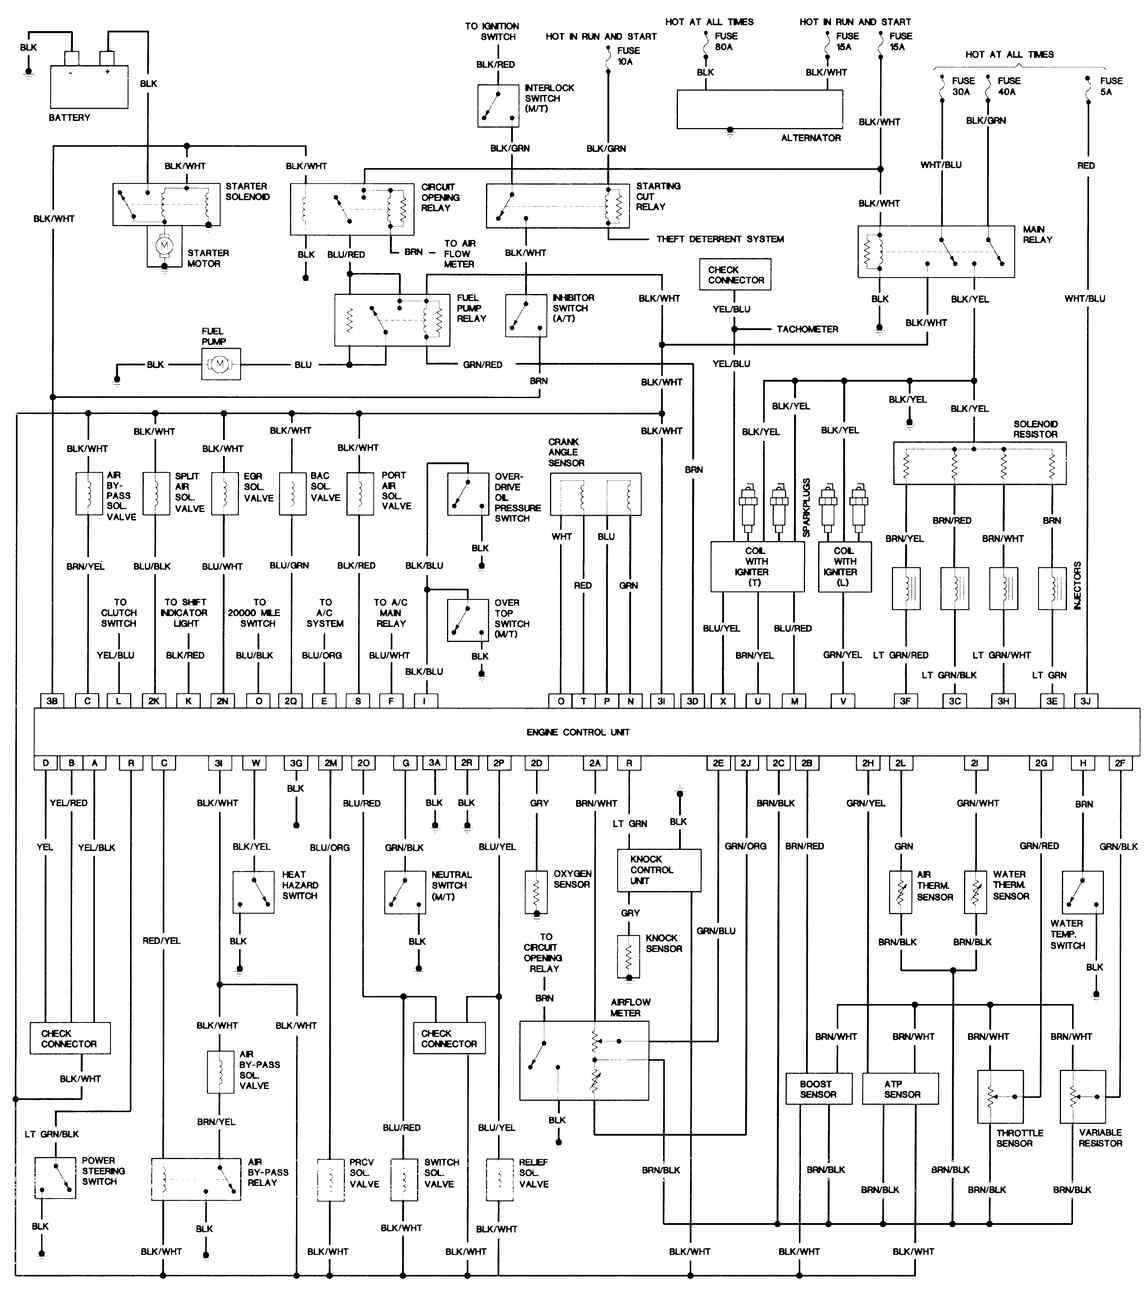 hight resolution of rx7 12a wiring diagram wiring diagram datasource rx7 wiring diagram jdm 1987 rx7 engine bay diagram